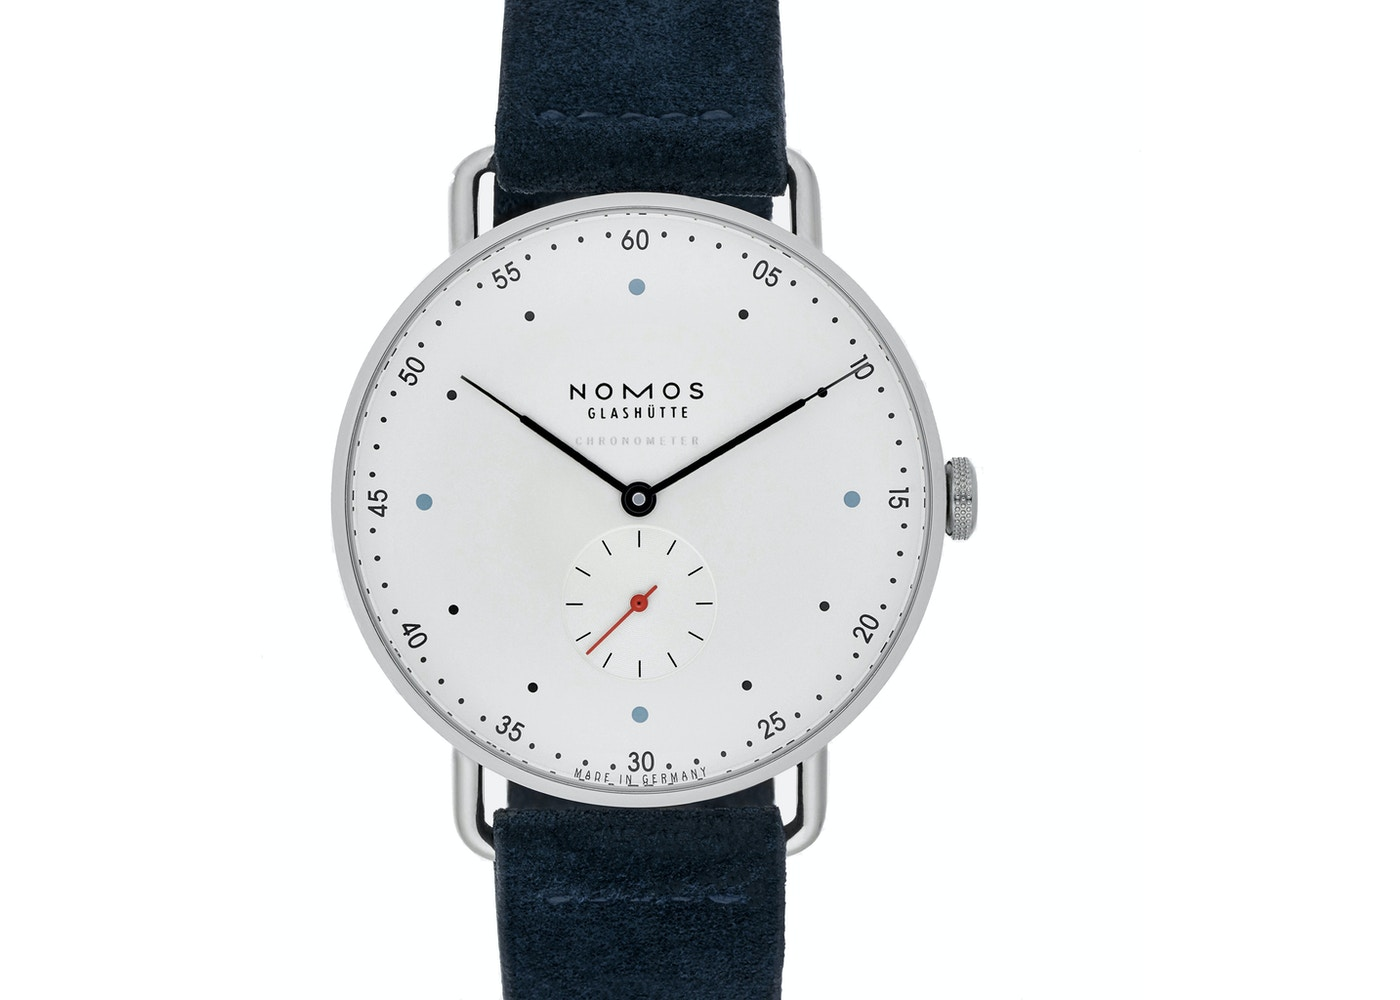 ad6fd8d0cca Authentic Nomos Watches - Buy   Sell